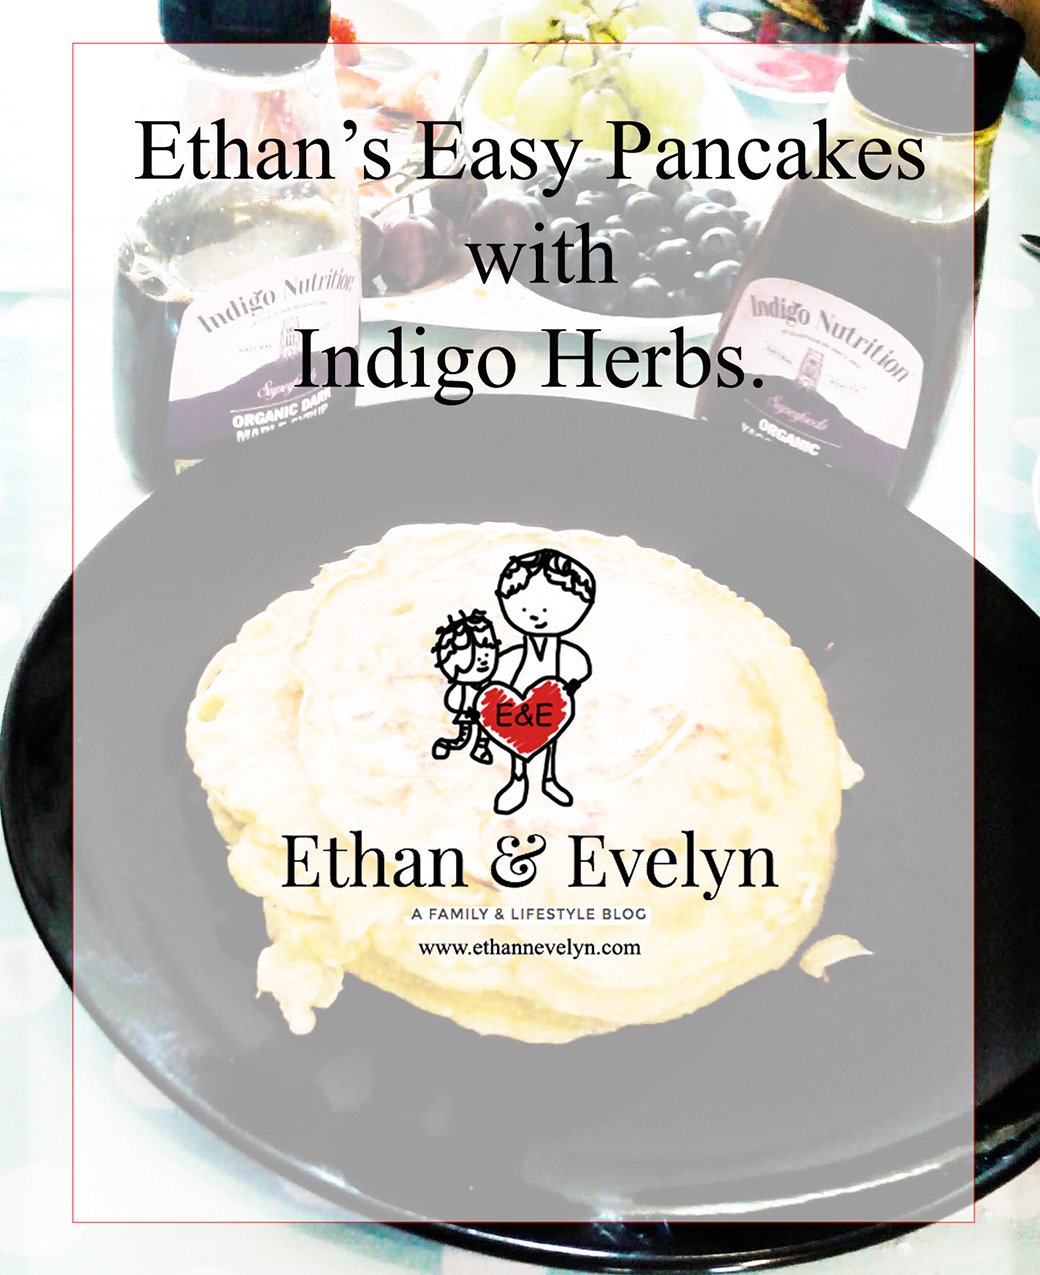 Ethan's Easy Pancakes with Indigo Herbs! Review & Giveaway